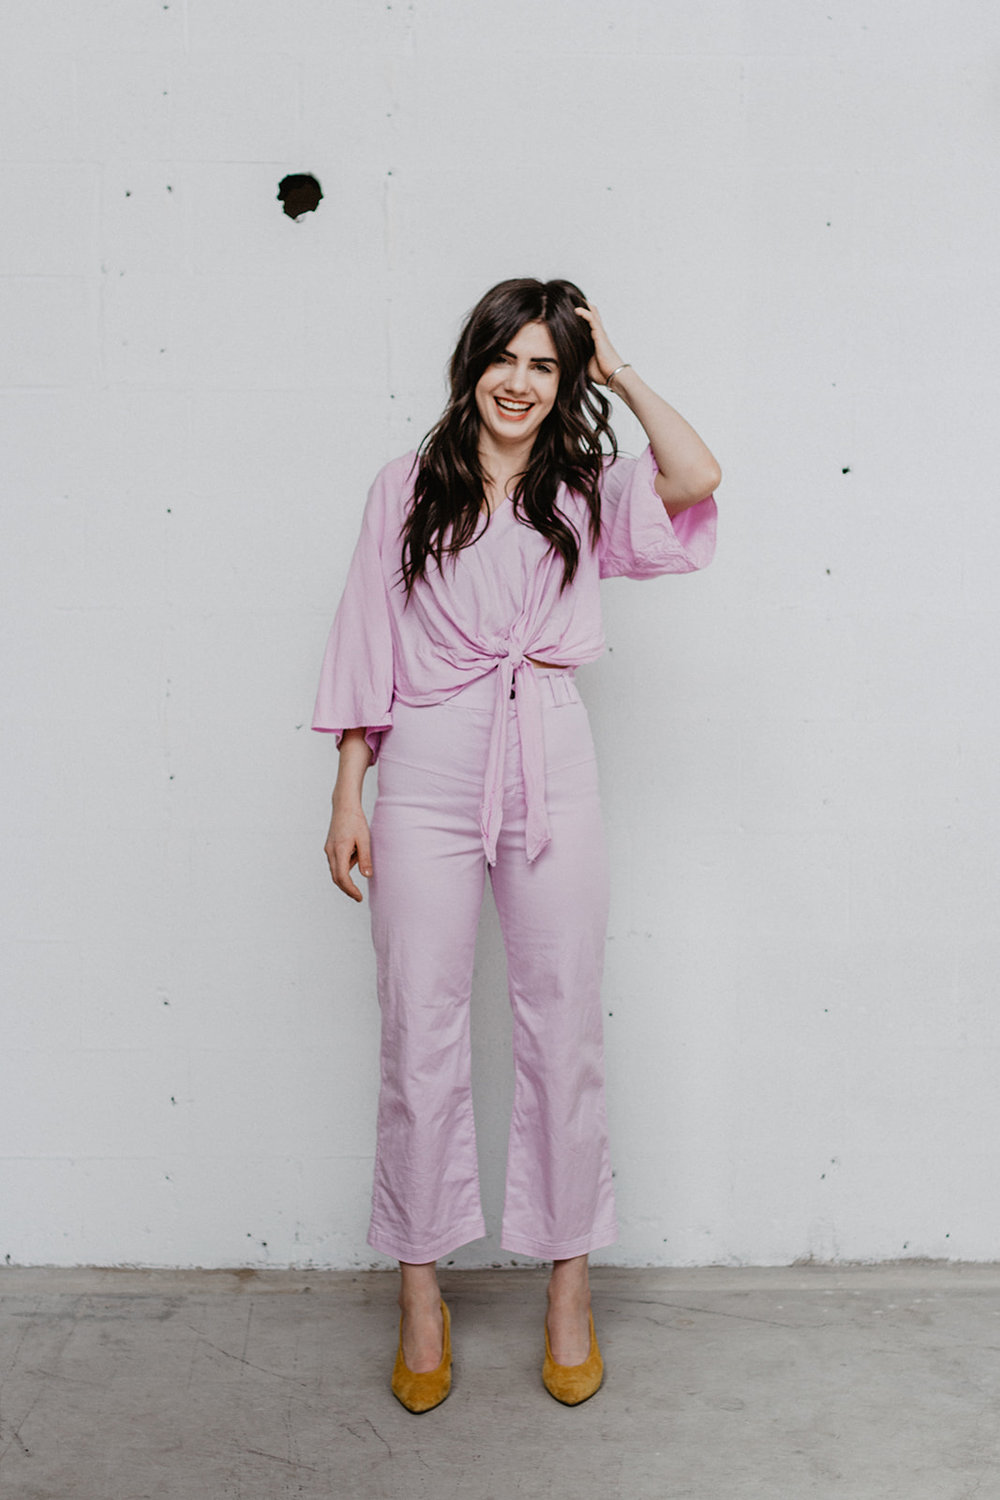 The Kathy Pant in Sweet Pea and The Tie Front-or-Back Shirt in Swee Pea